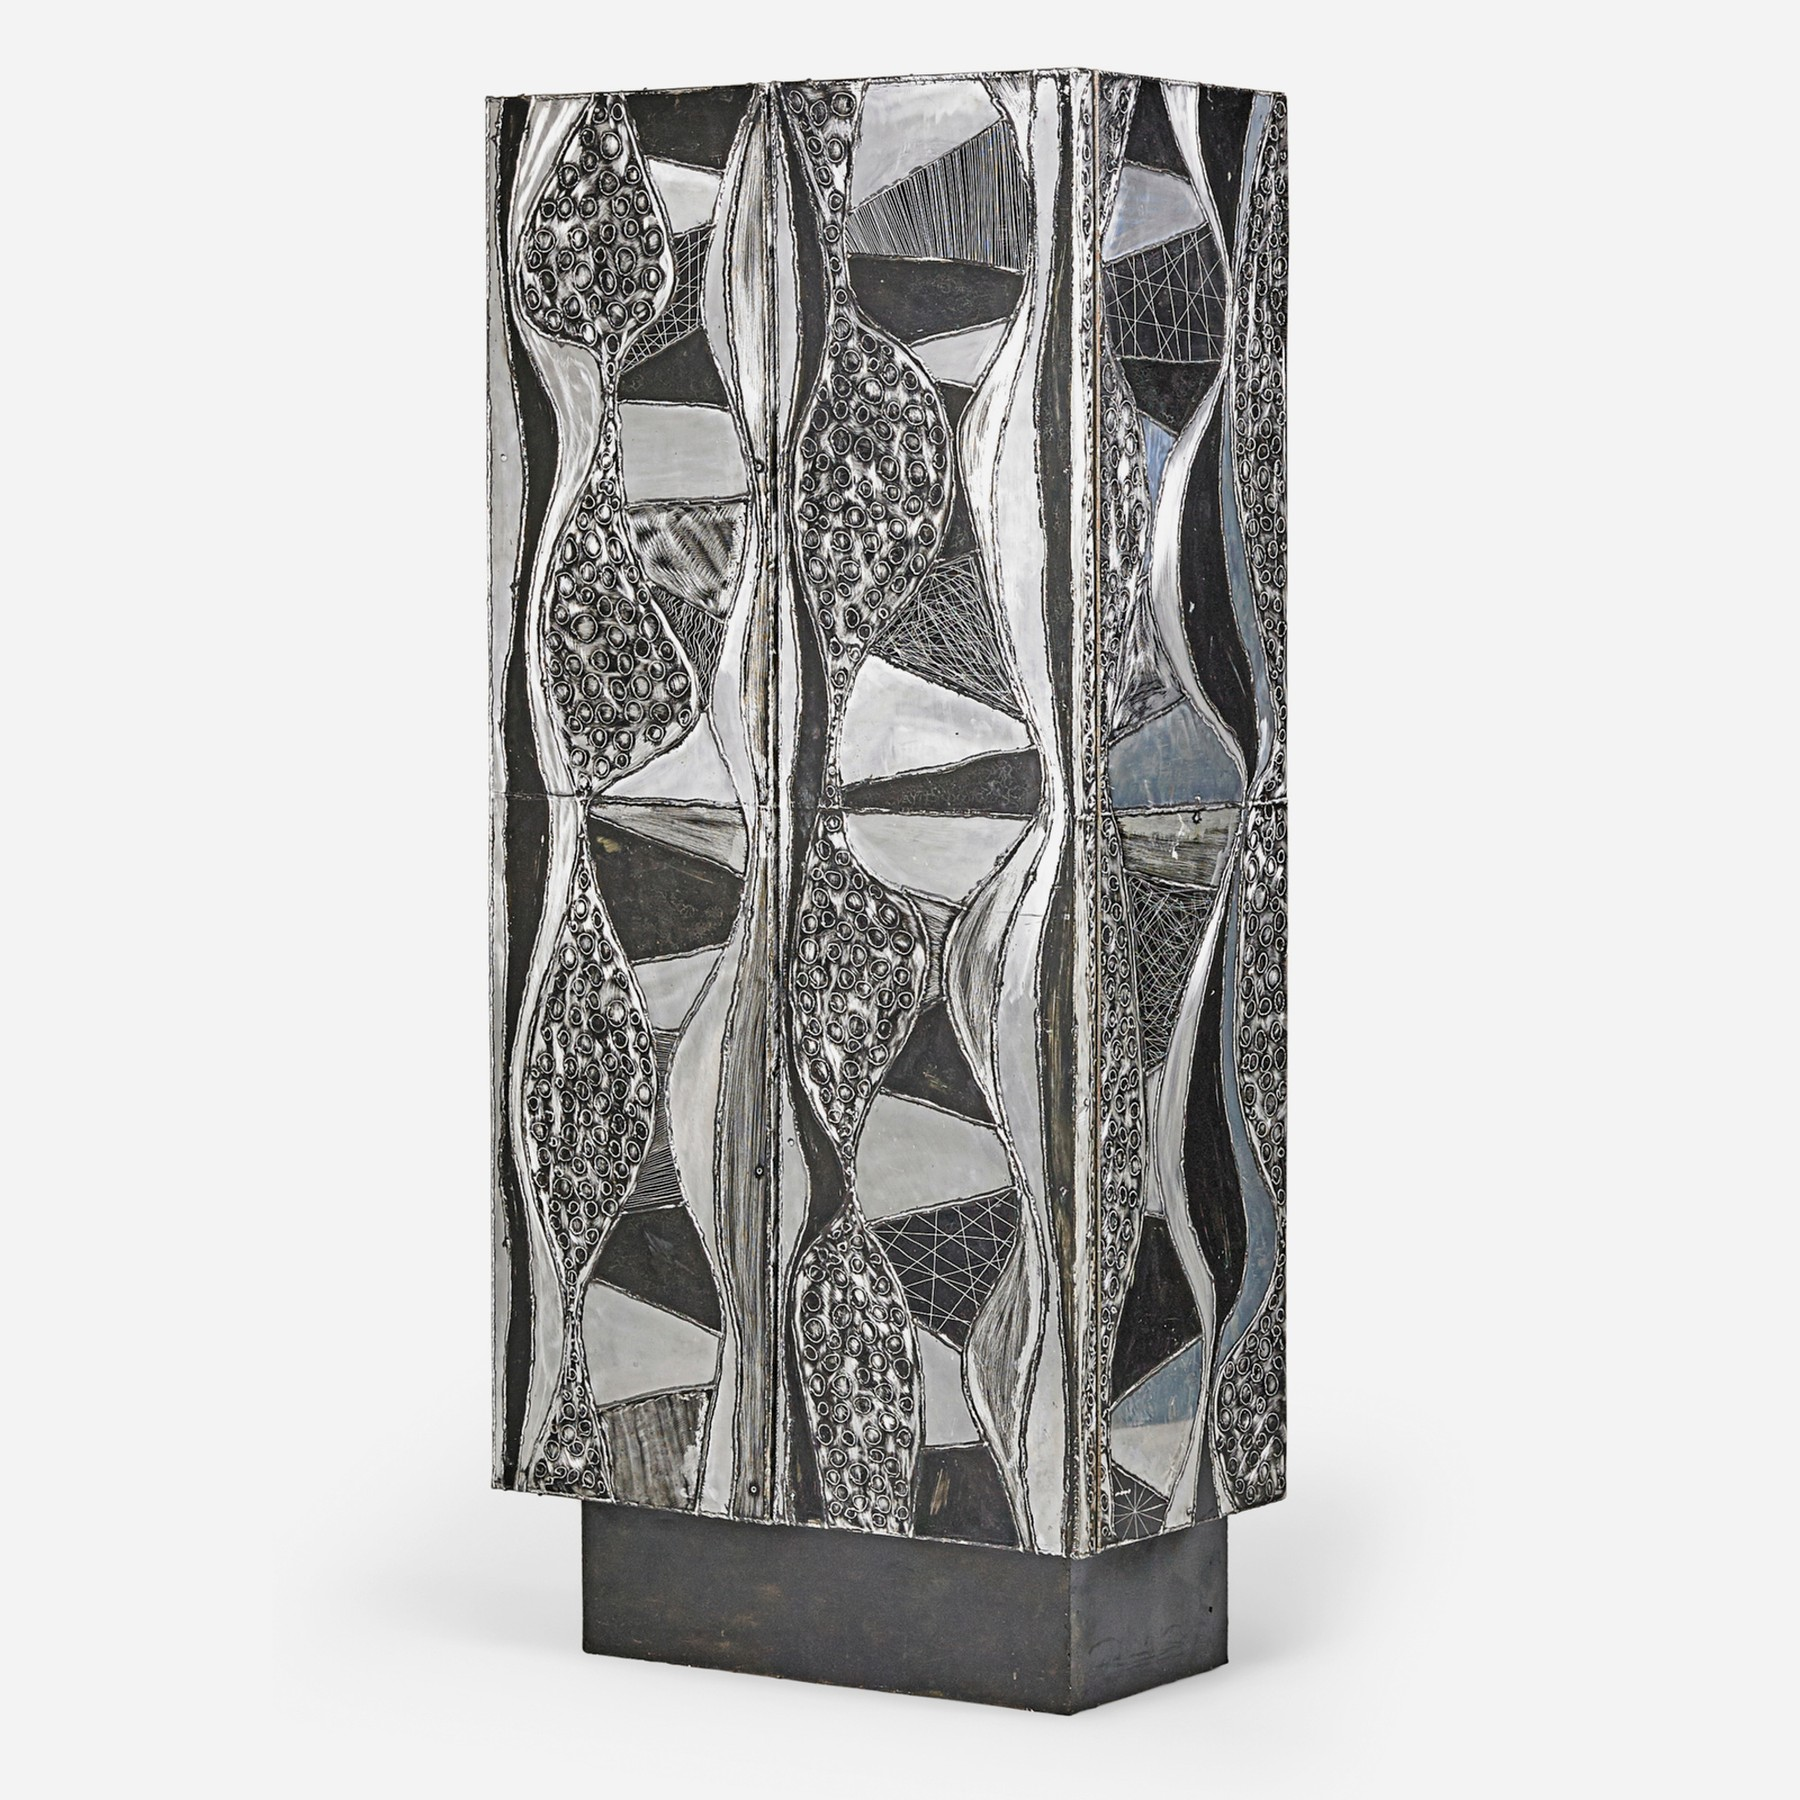 1023_0_modern_design_january_2019_paul_evans_rare_and_exceptional_argente_cabinet__rago_auction.jpg?t=1592402426